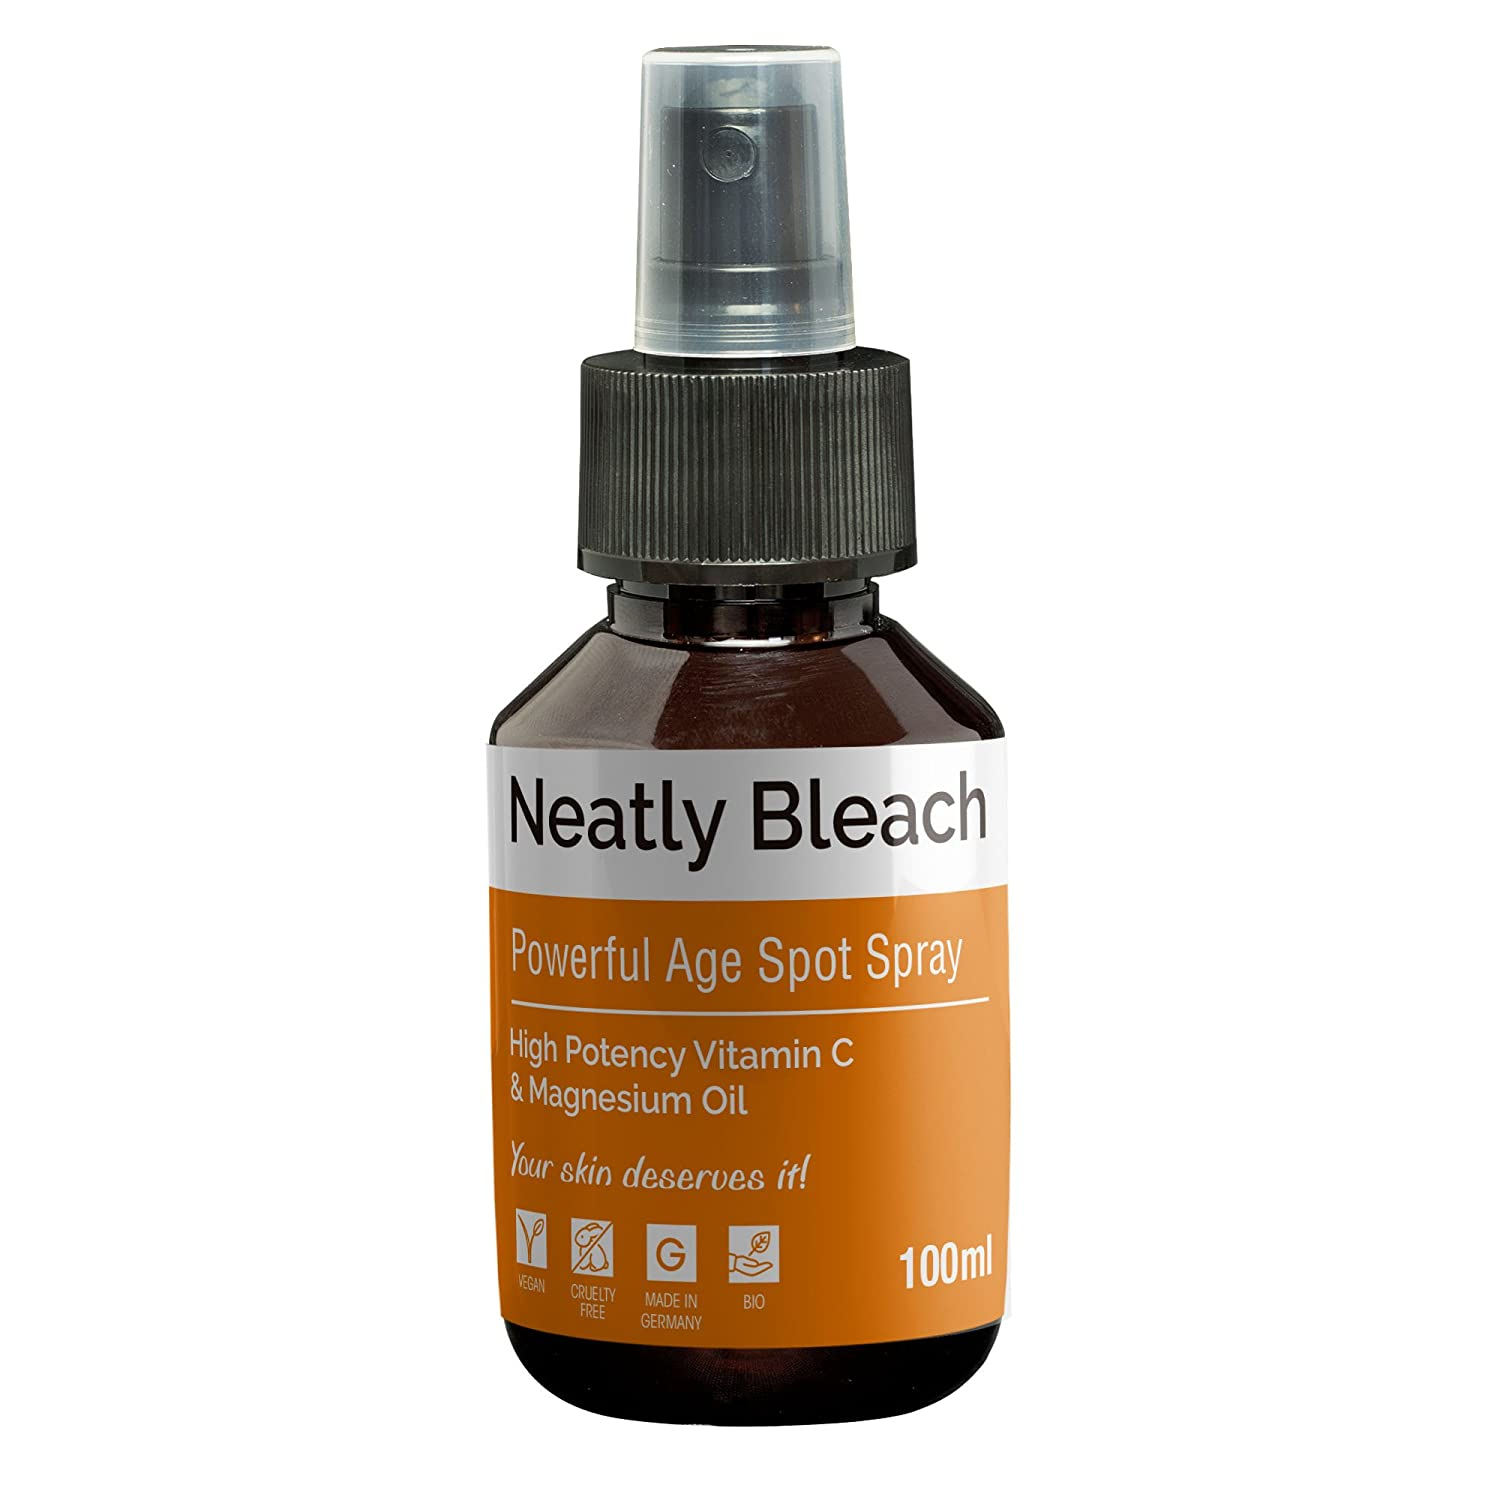 Skin bleach for age spot remover by NEATLY Bleach | 100ml bleach spray | Age spots cream & hyaluronic acid alternative | Vitamin C | skin whitener